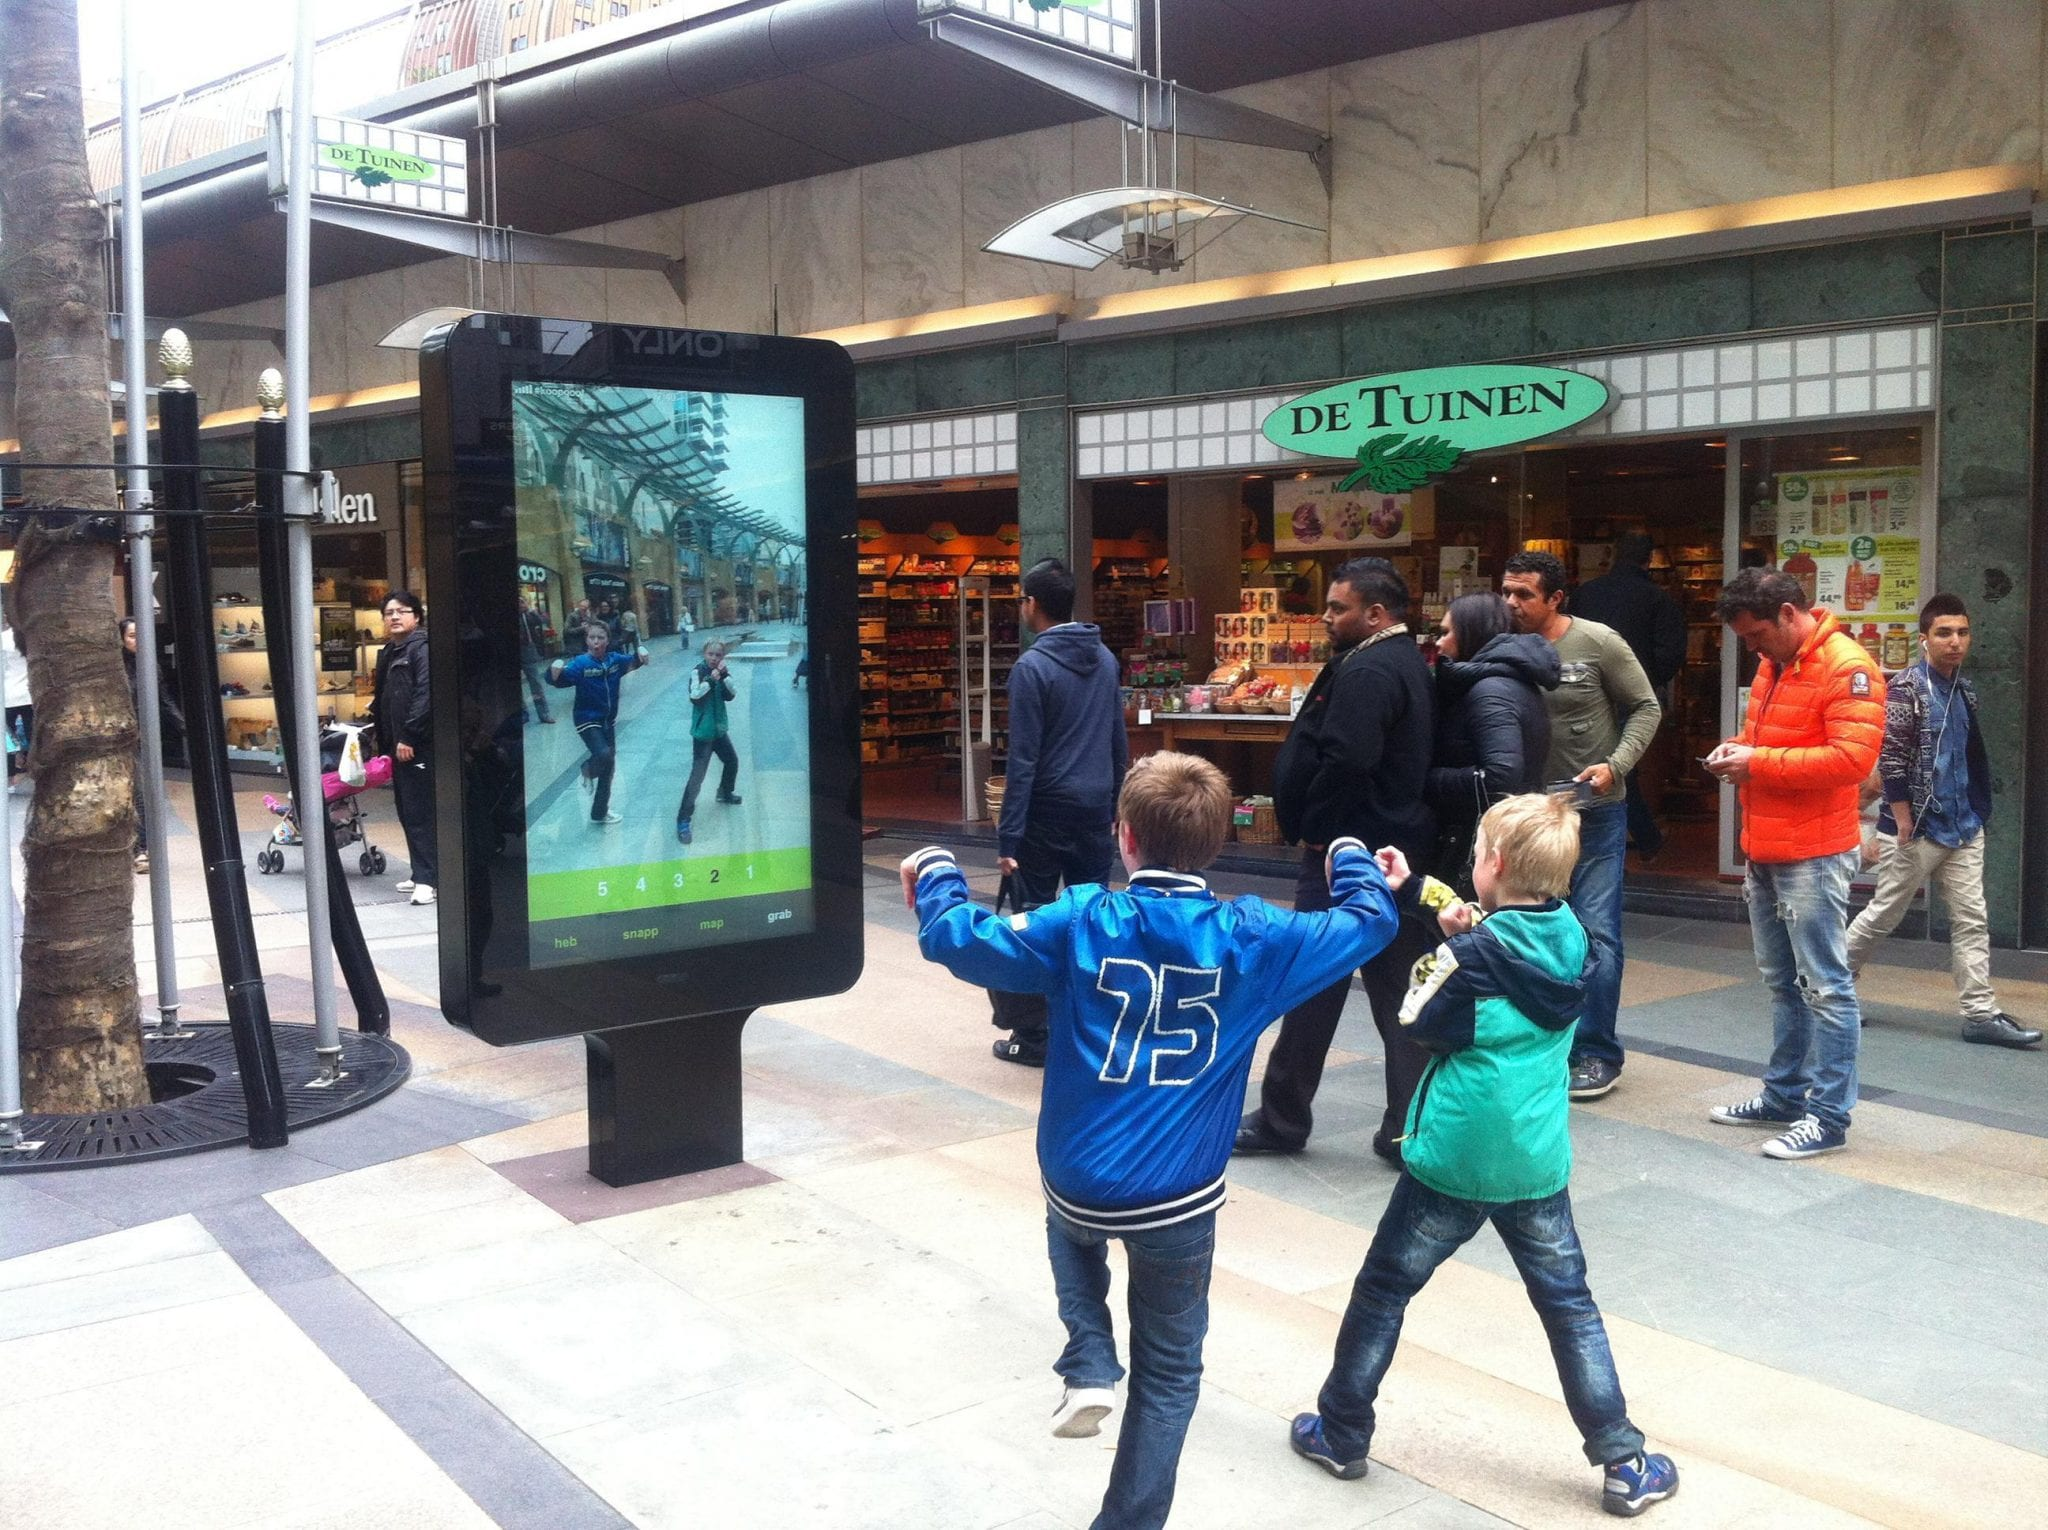 Zytronic and Surtronic 72 inch digital signage in Rotterdam